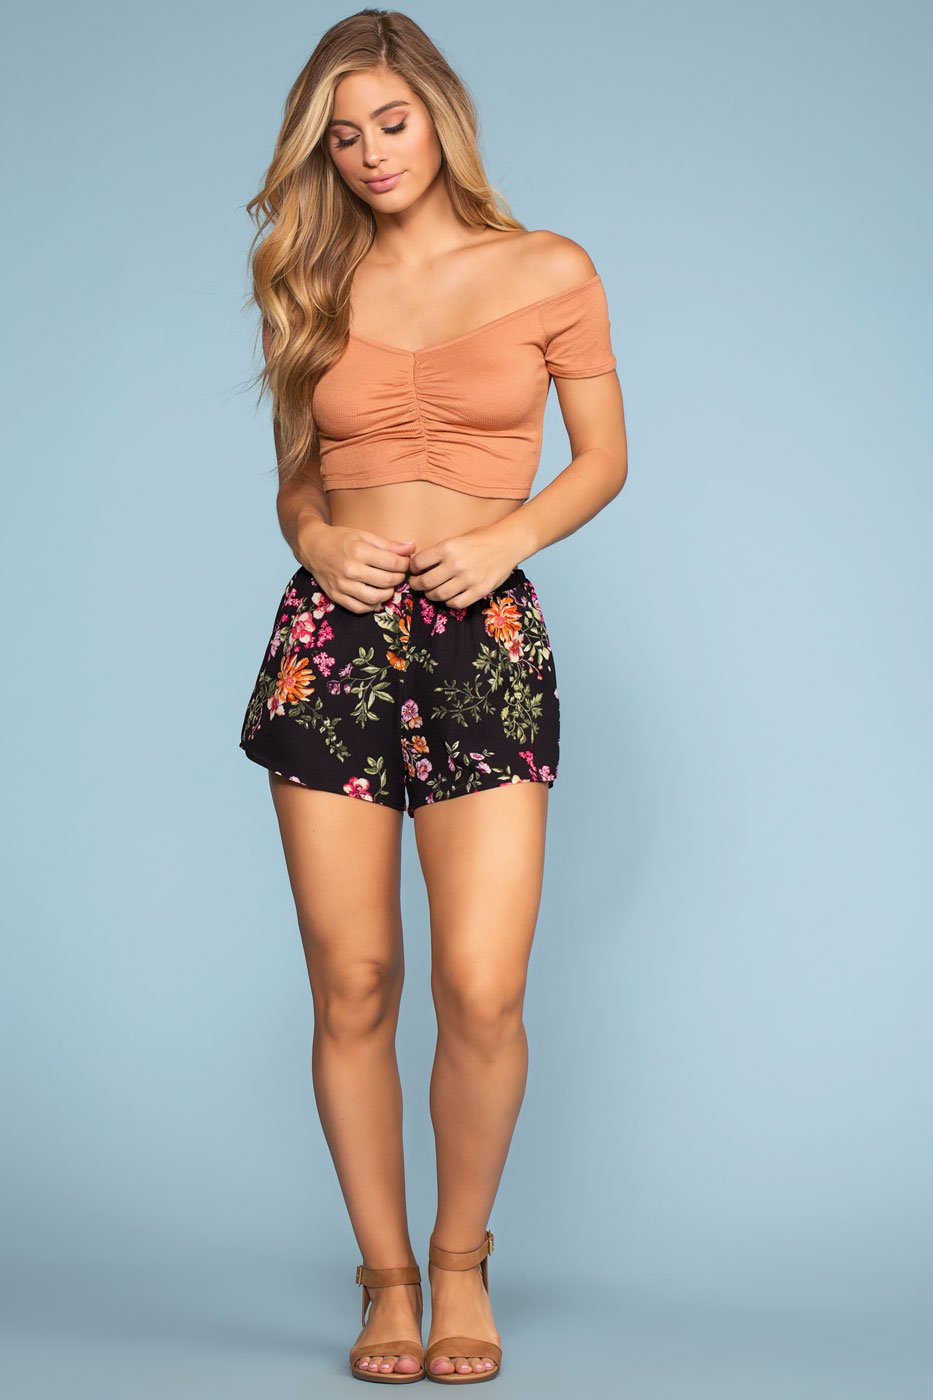 Shorts - Sunday Blossom Floral Shorts - Black